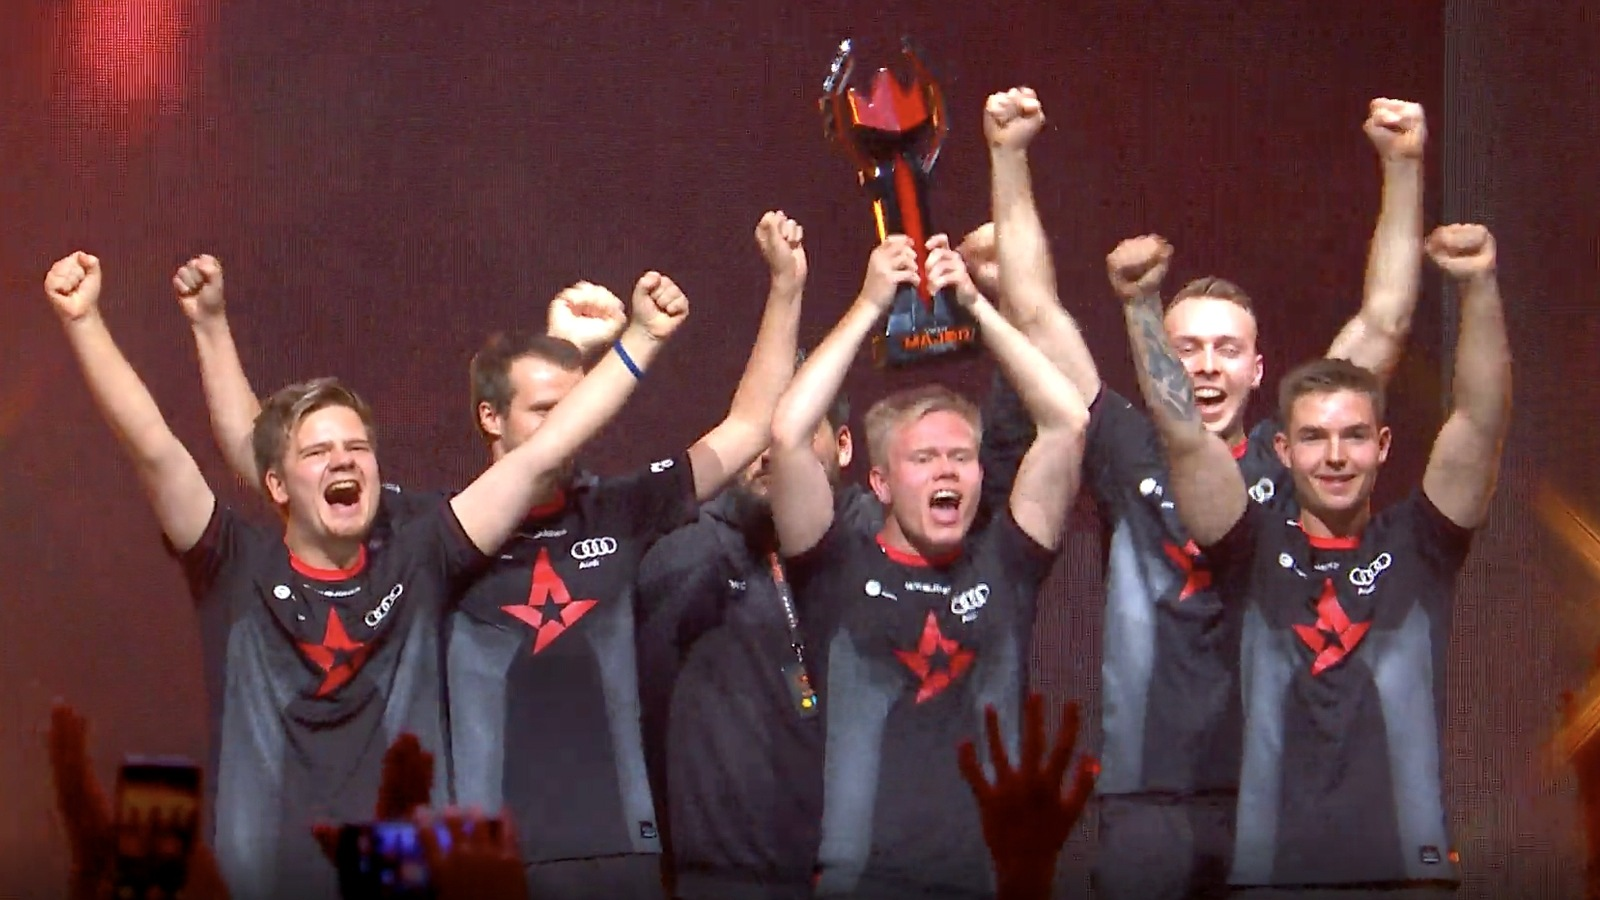 Astralis to pass on EPICENTER, dev1ce comments on the state of CS:GO